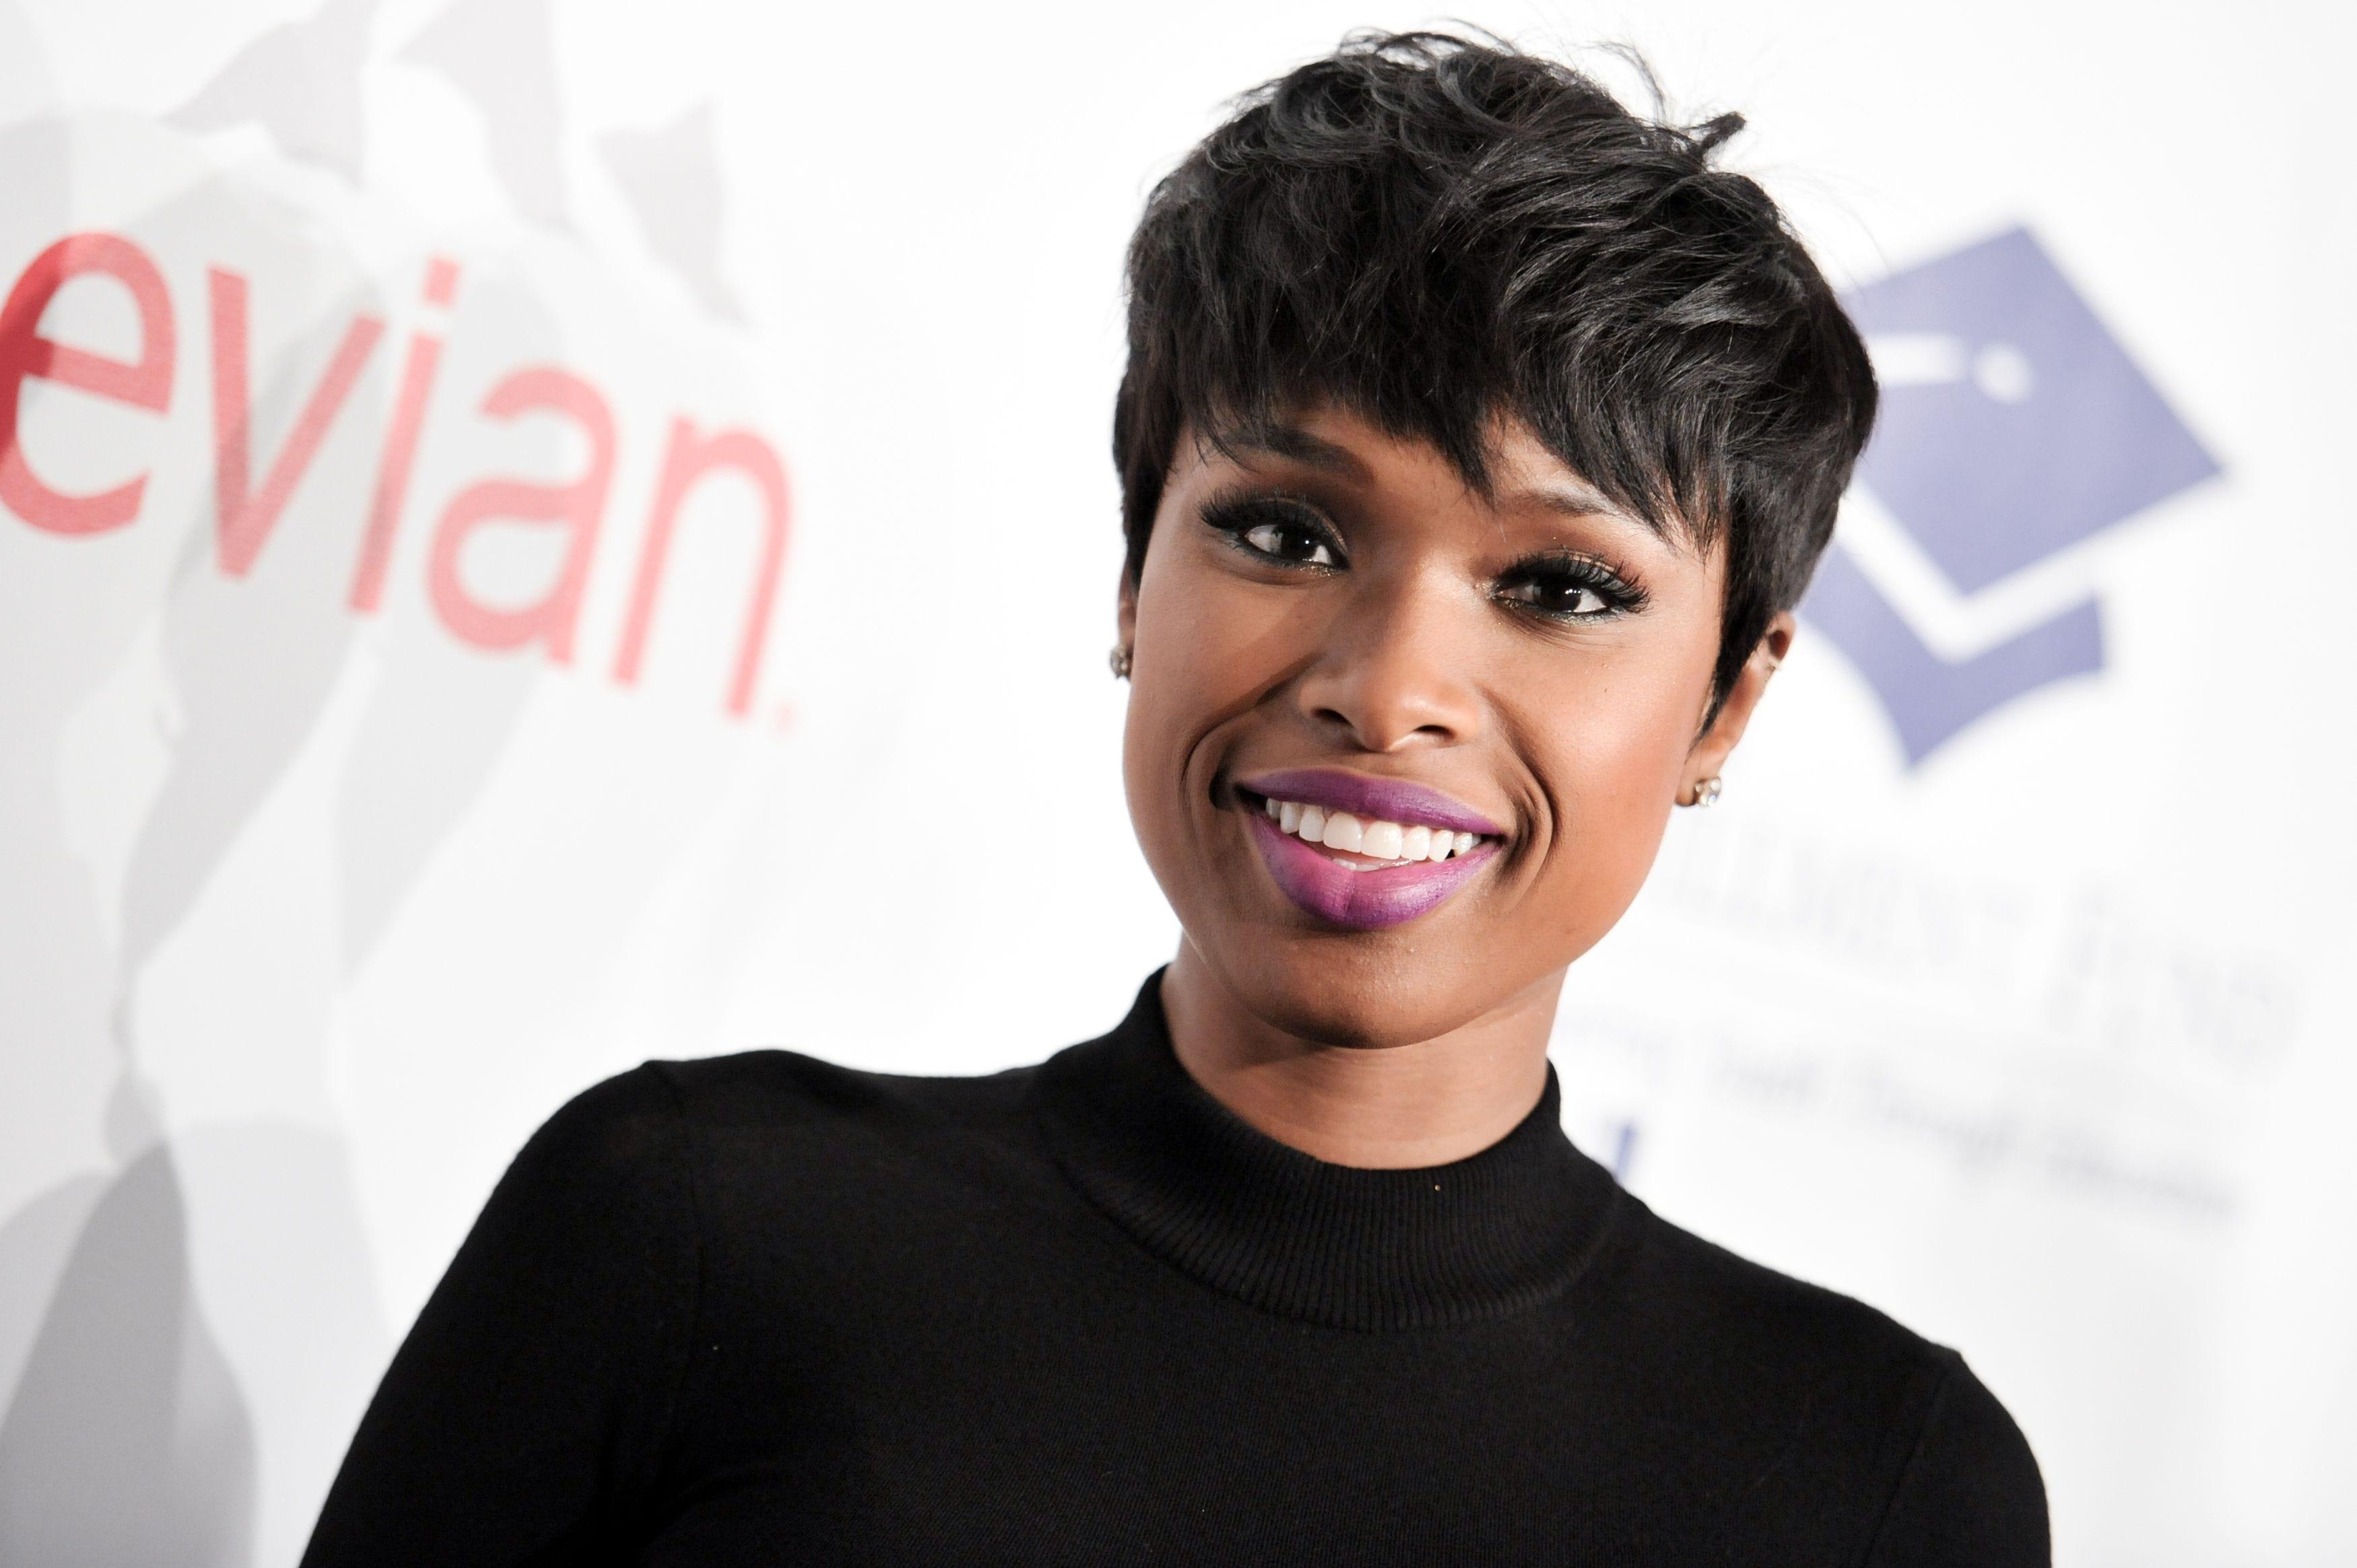 jennifer hudson smile widescreen hd wallpaper 161